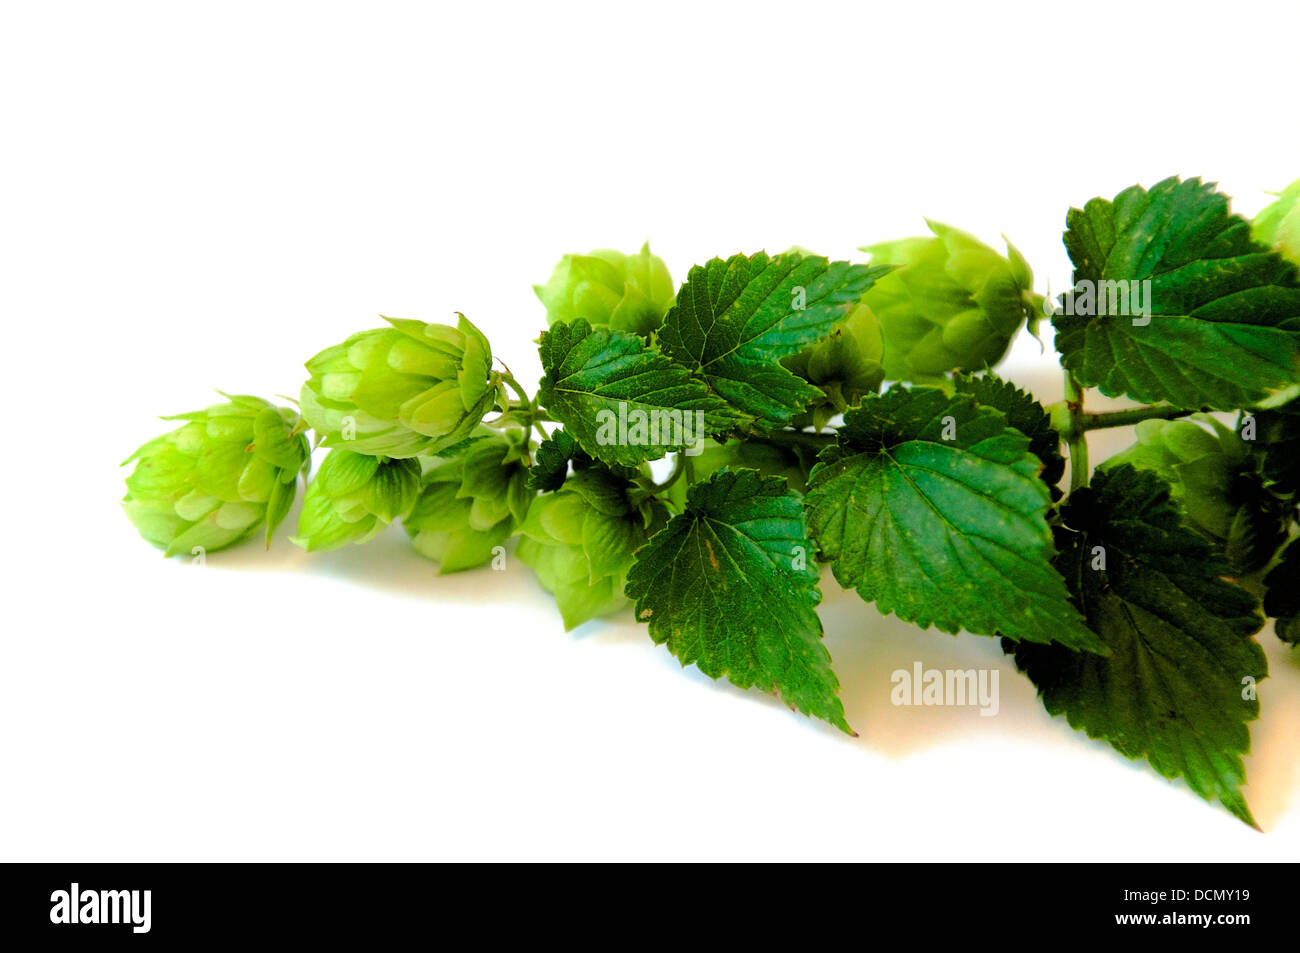 Branch of Hops with leaves and umbels - Stock Image